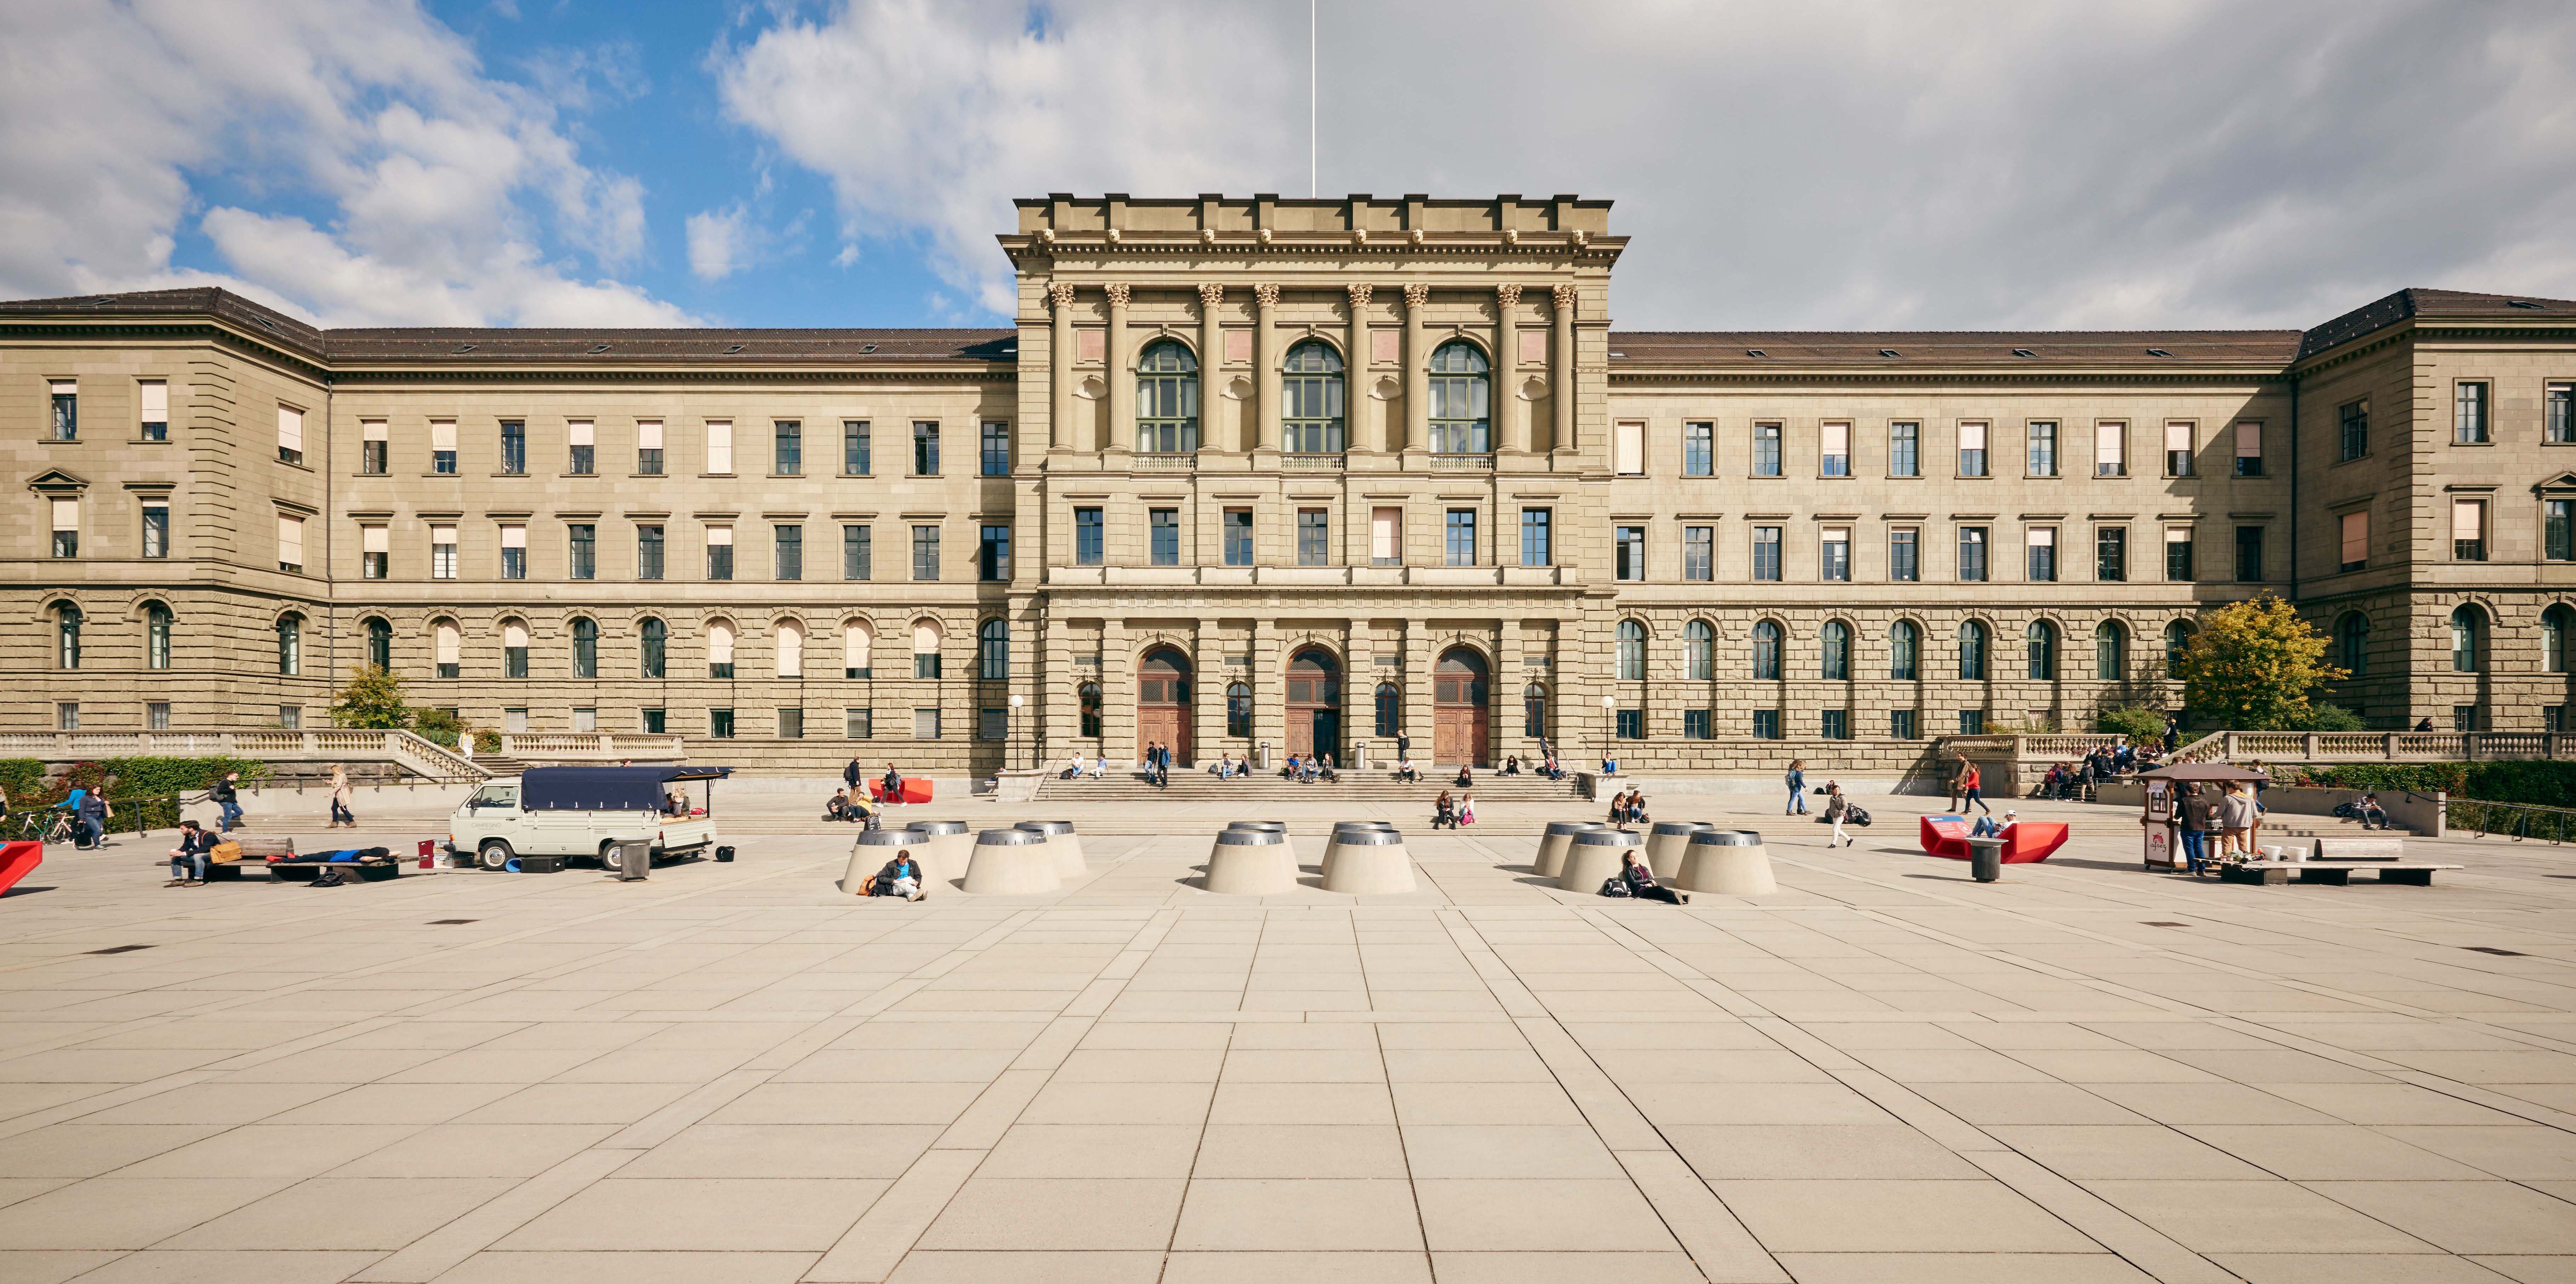 8 Professors Appointed At Eth Zurich